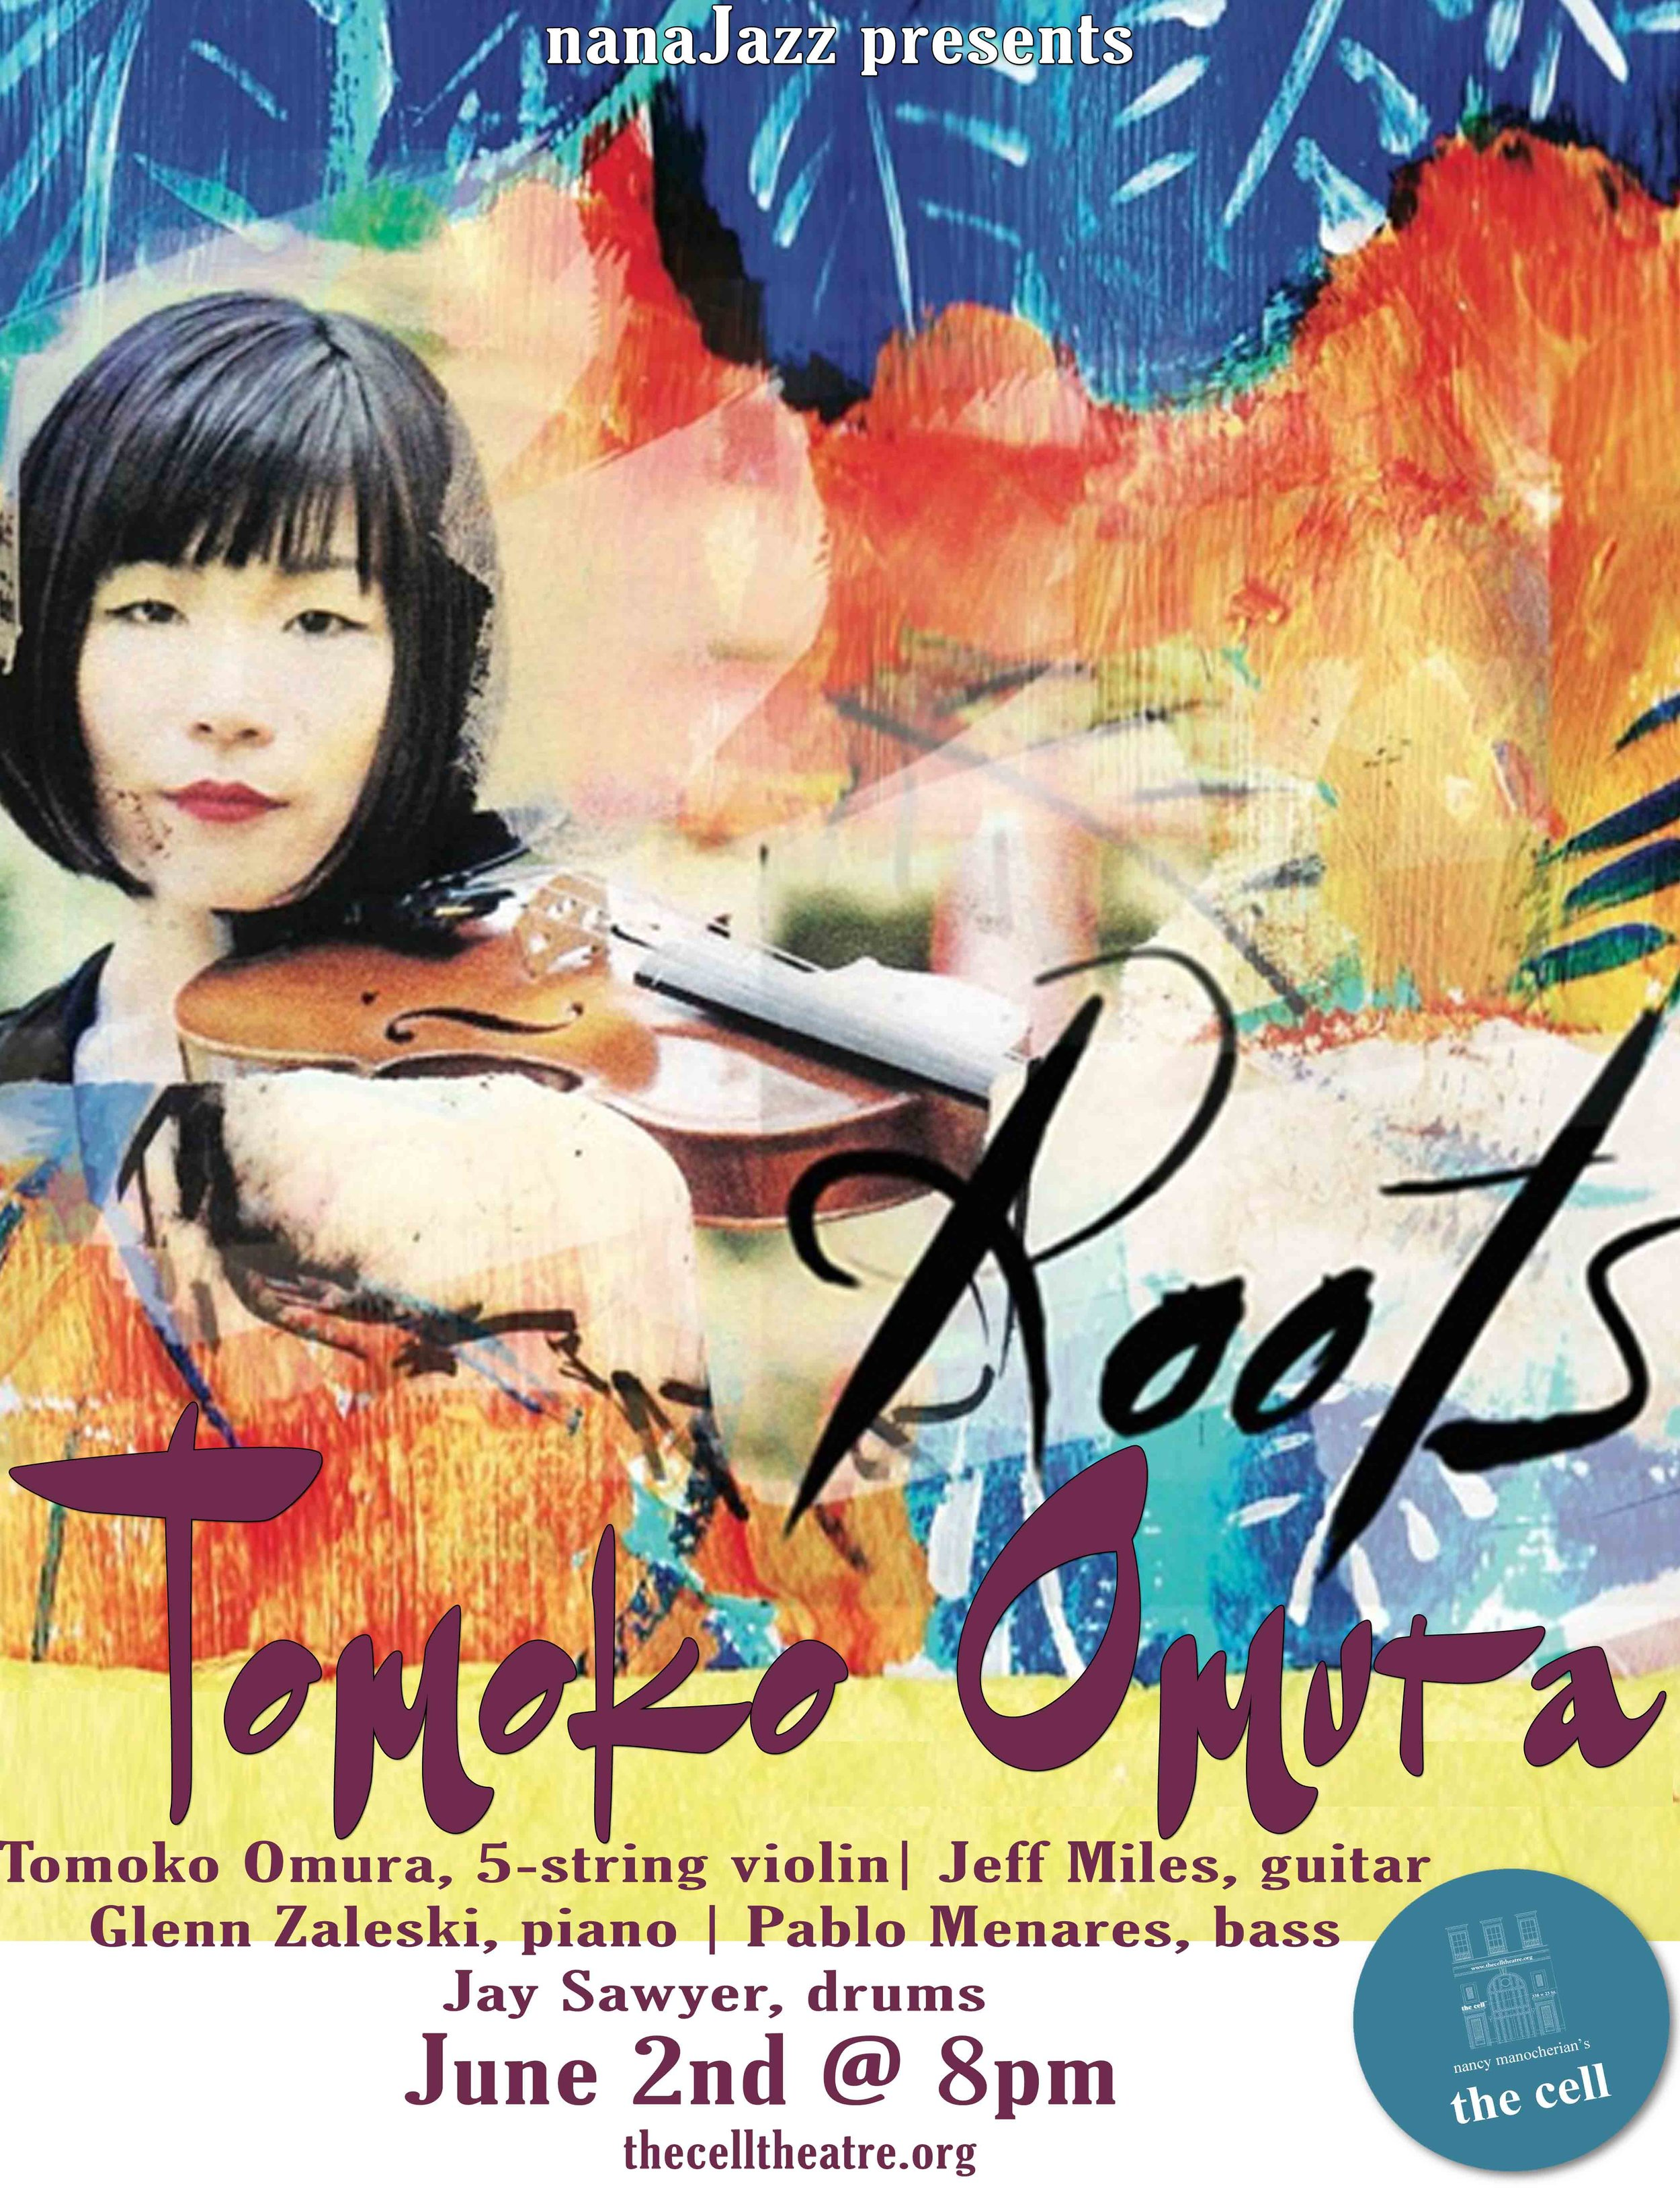 """Tomoko Omura is among today's leading voices in jazz violin. """"Roots"""", her debut album for Inner Circle, is a compelling tribute to her native Japan, featuring original arrangements of ten classic Japanese folk and popular songs. In the words of fellow violinist Christian Howes, """"'Roots' is a tremendous accomplishment, and undoubtedly one of the most important and creative jazz albums produced by a violinist in recent history.""""  Downbeat  magazine calls Tomoko """"a leader with a fine future"""" with 4 and half star. Her latest release """"Post Bop Gypsies"""" (2017) is an album that is played by Gypsy jazz instrumentation (violin, guitar and a bass) with the Post bop jazz attitude. Also from Inner Circle Music. She is chosen for one of """"Rising star"""" on critics poll, Downbeat Magazine in 2015, 2016 and 2017.  Strongly informed by the jazz violin tradition, her 2008 self-released debut album, """"Visions"""", is a collection of seven dynamic original pieces, each of which is dedicated to one of the greats of the instrument, from Stuff Smith to Zbigniew Seifert. Violinst Matt Glaser praises """"Visions"""" as such: """"Her playing here is uniformly amazing, with great ideas, great tone, perfect intonation and great feel..."""". """"Mark's Passion"""", dedicated to Mark Feldman, was awarded an Honorable Mention in the 2008 International Songwriting Competition. The release of """"Visions"""" also prompted  Strings  Magazine to name Omura a """"Rising Star"""" in 2009. In 2014, she was chosen as a semi finalist of the 1st International Zbigniew Seifert Jazz Violin Competition in Krakow, Poland.  Originally from Shizuoka, Japan, she began studying the violin at a young age with her mother, and began playing jazz music while studying at Yokohama National University. In 2004, Tomoko relocated to the United States when she was awarded a scholarship to study at the Berklee College of Music in Boston, MA. While at Berklee, Tomoko worked with such legendary musicians as George Garzone, Hal Crook, Ed Tomassi, Jamey Haddad, Ma"""